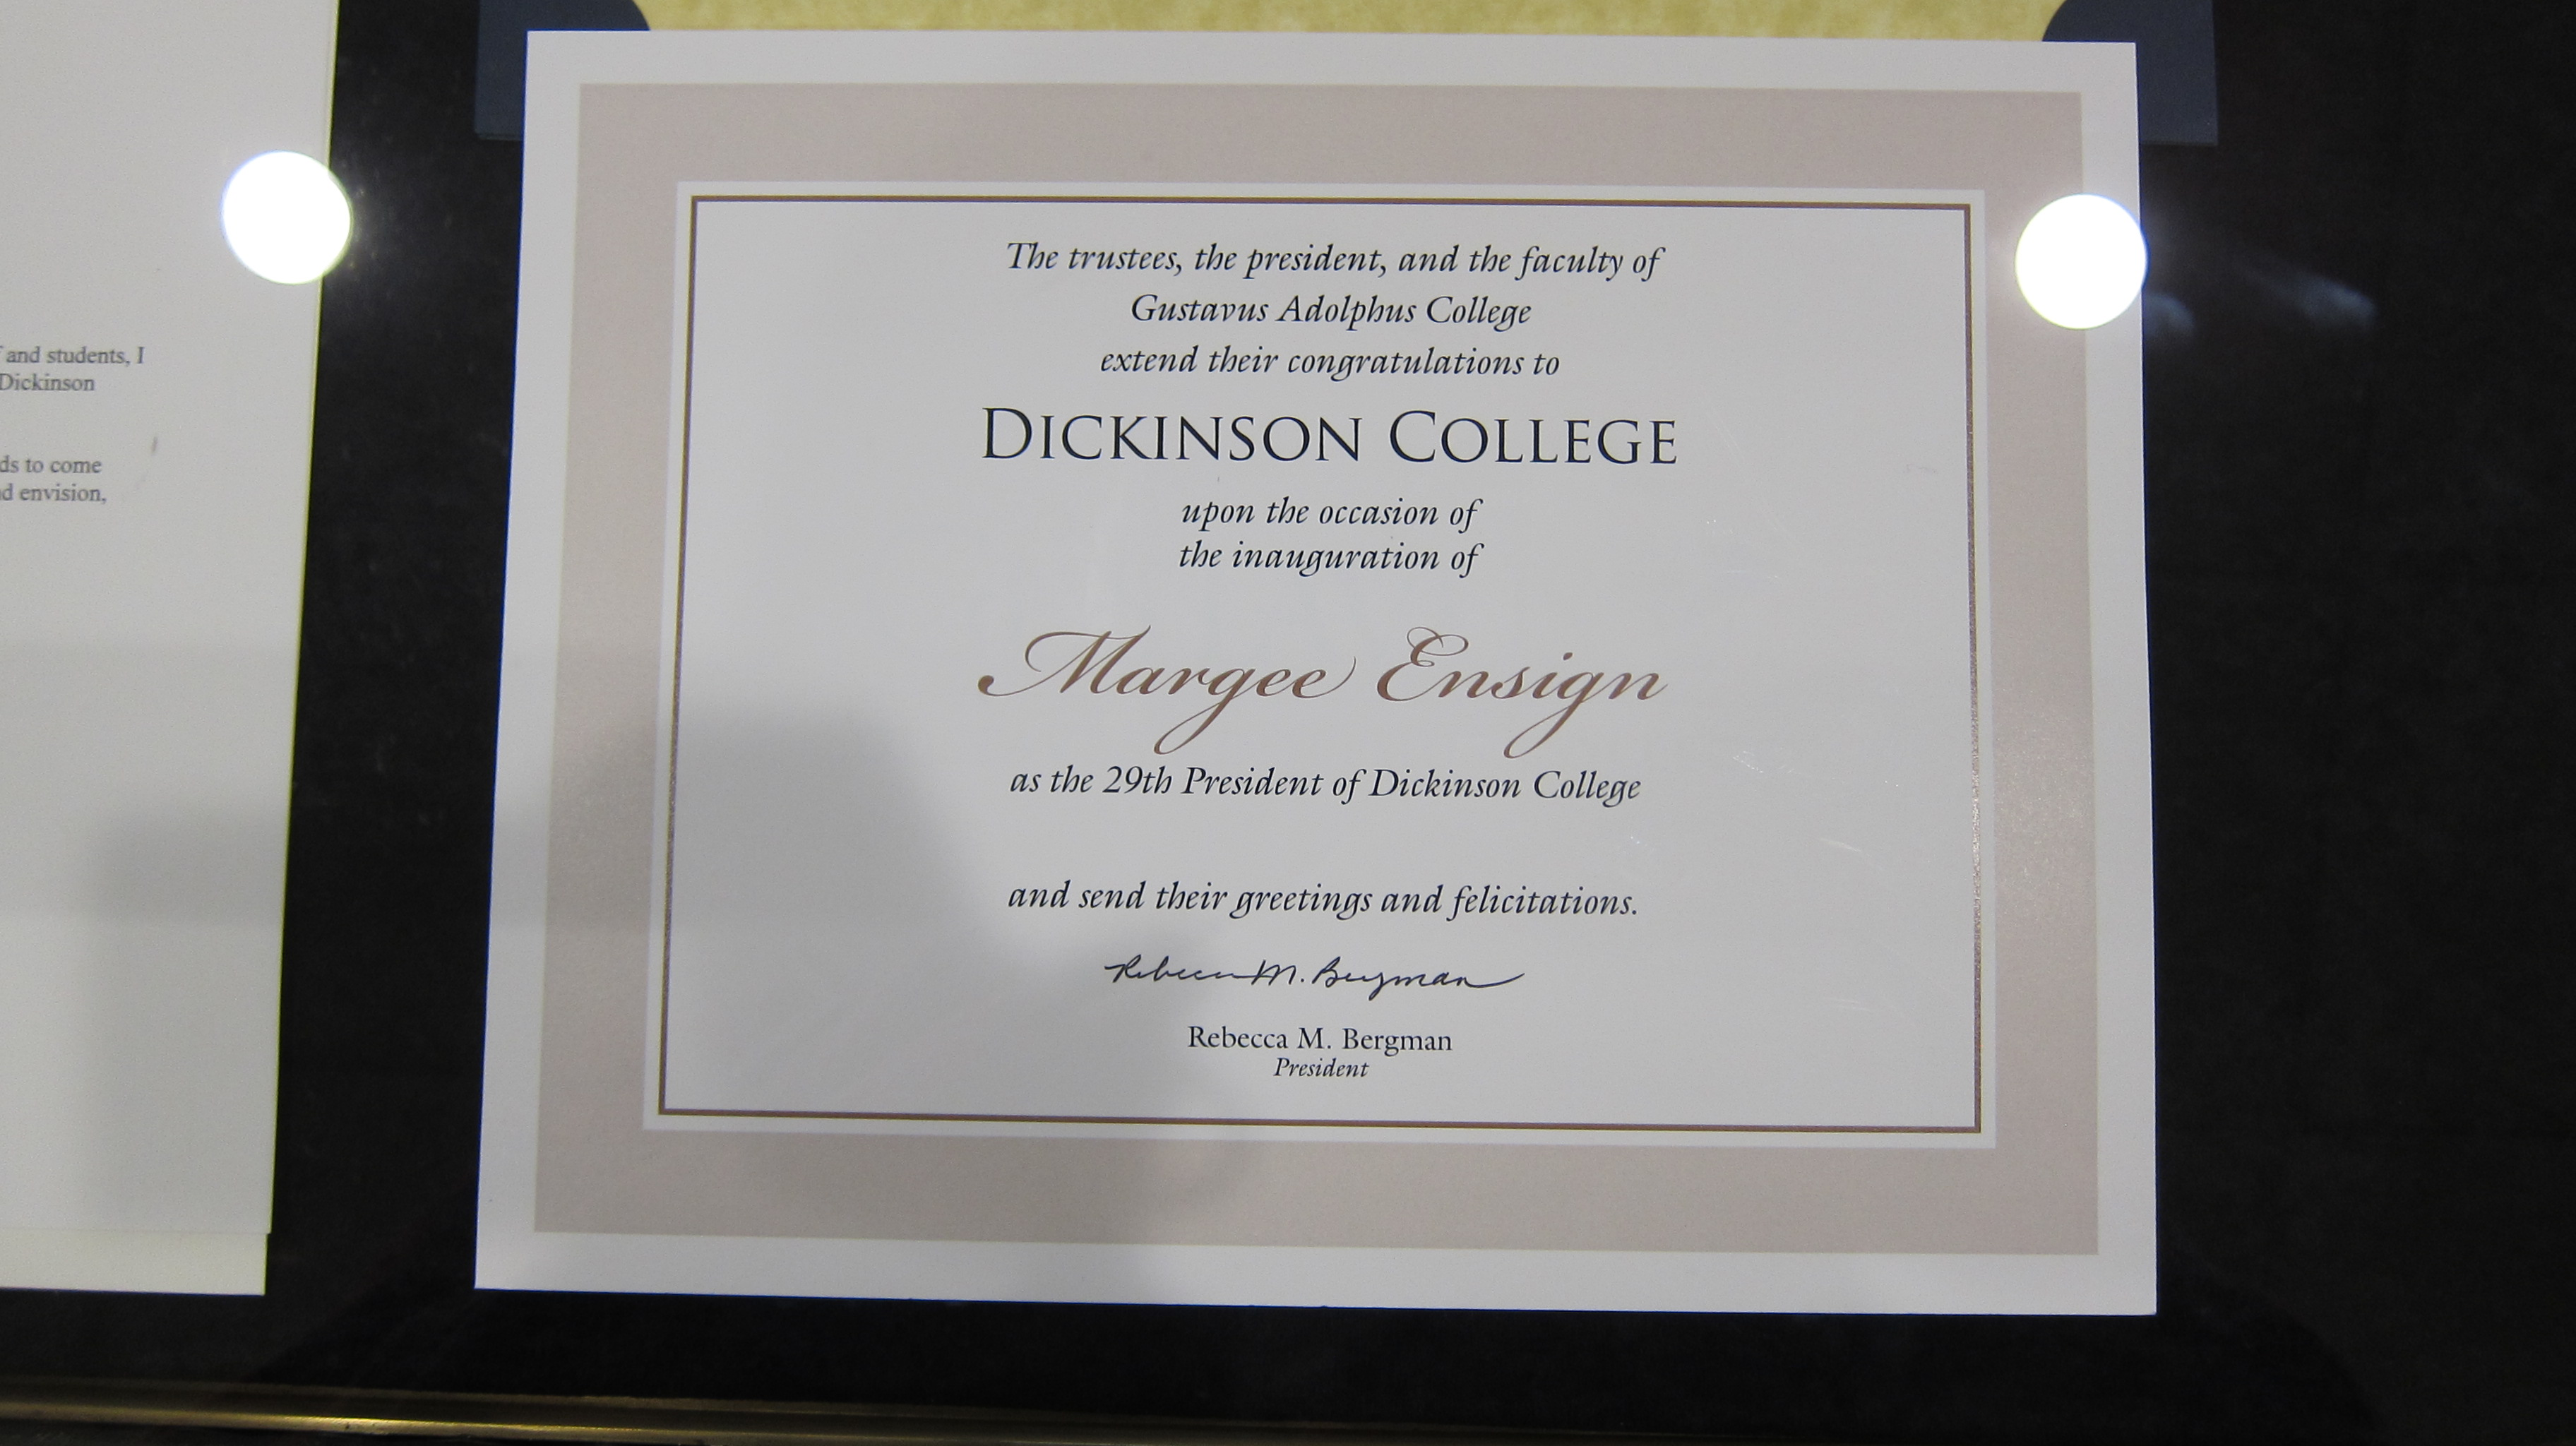 Congulations from Dickinson College to Margee Ensign